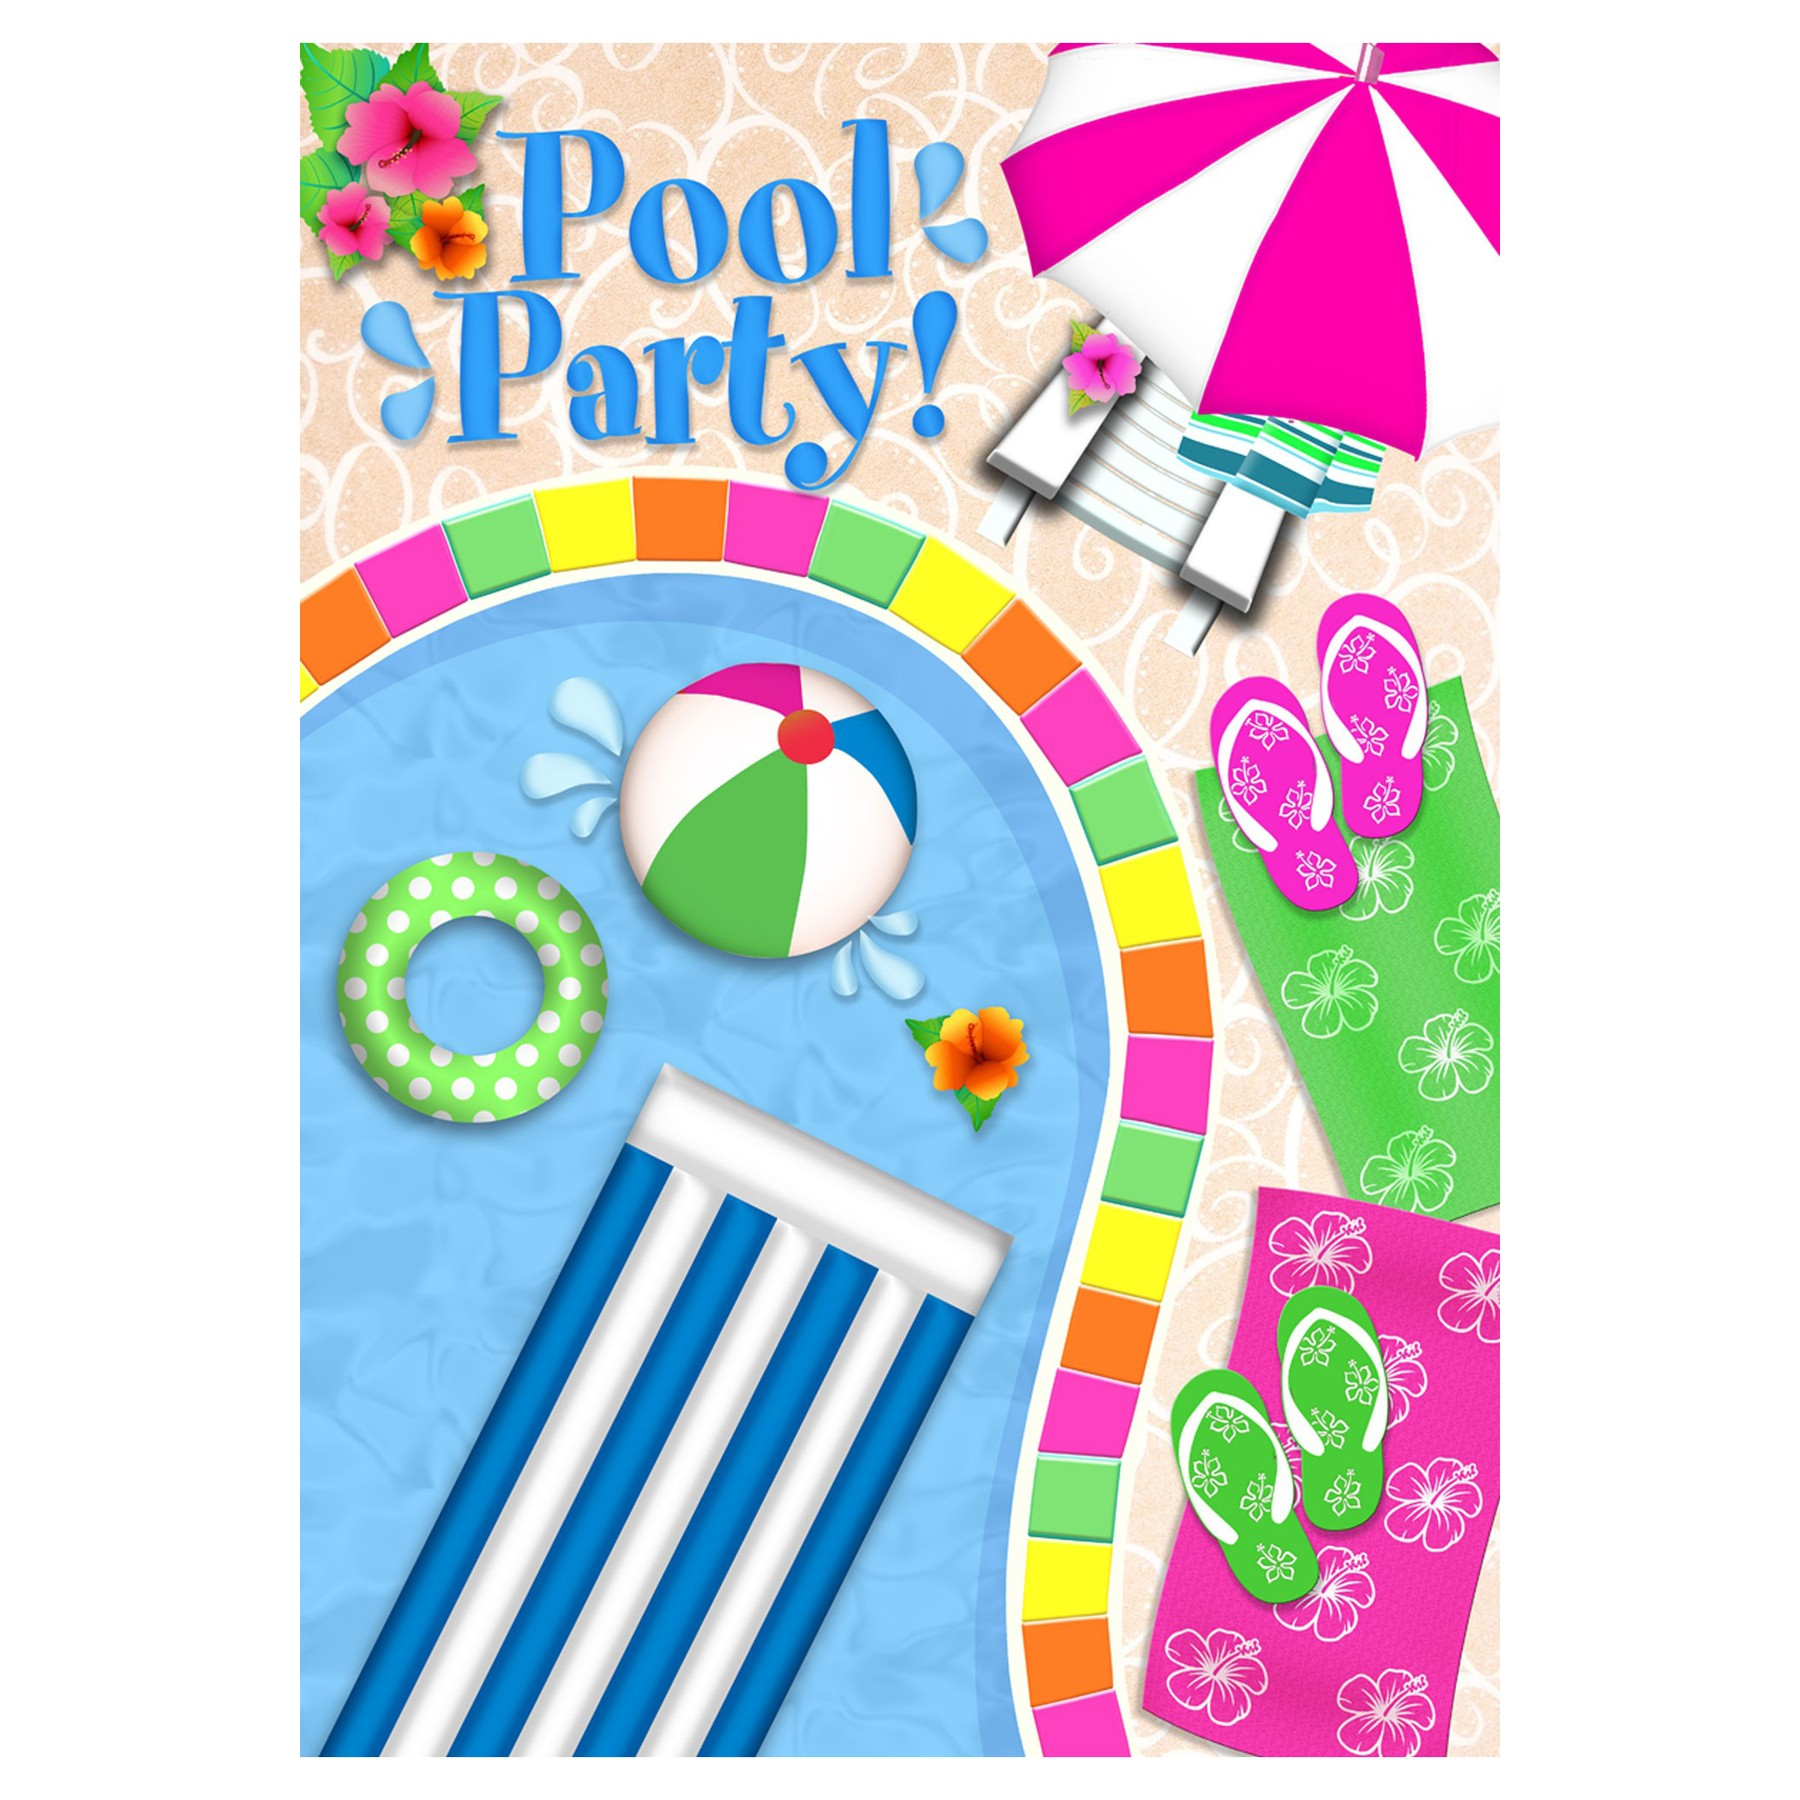 1800x1800 Olympic Swimming Pool Clipart Free Images